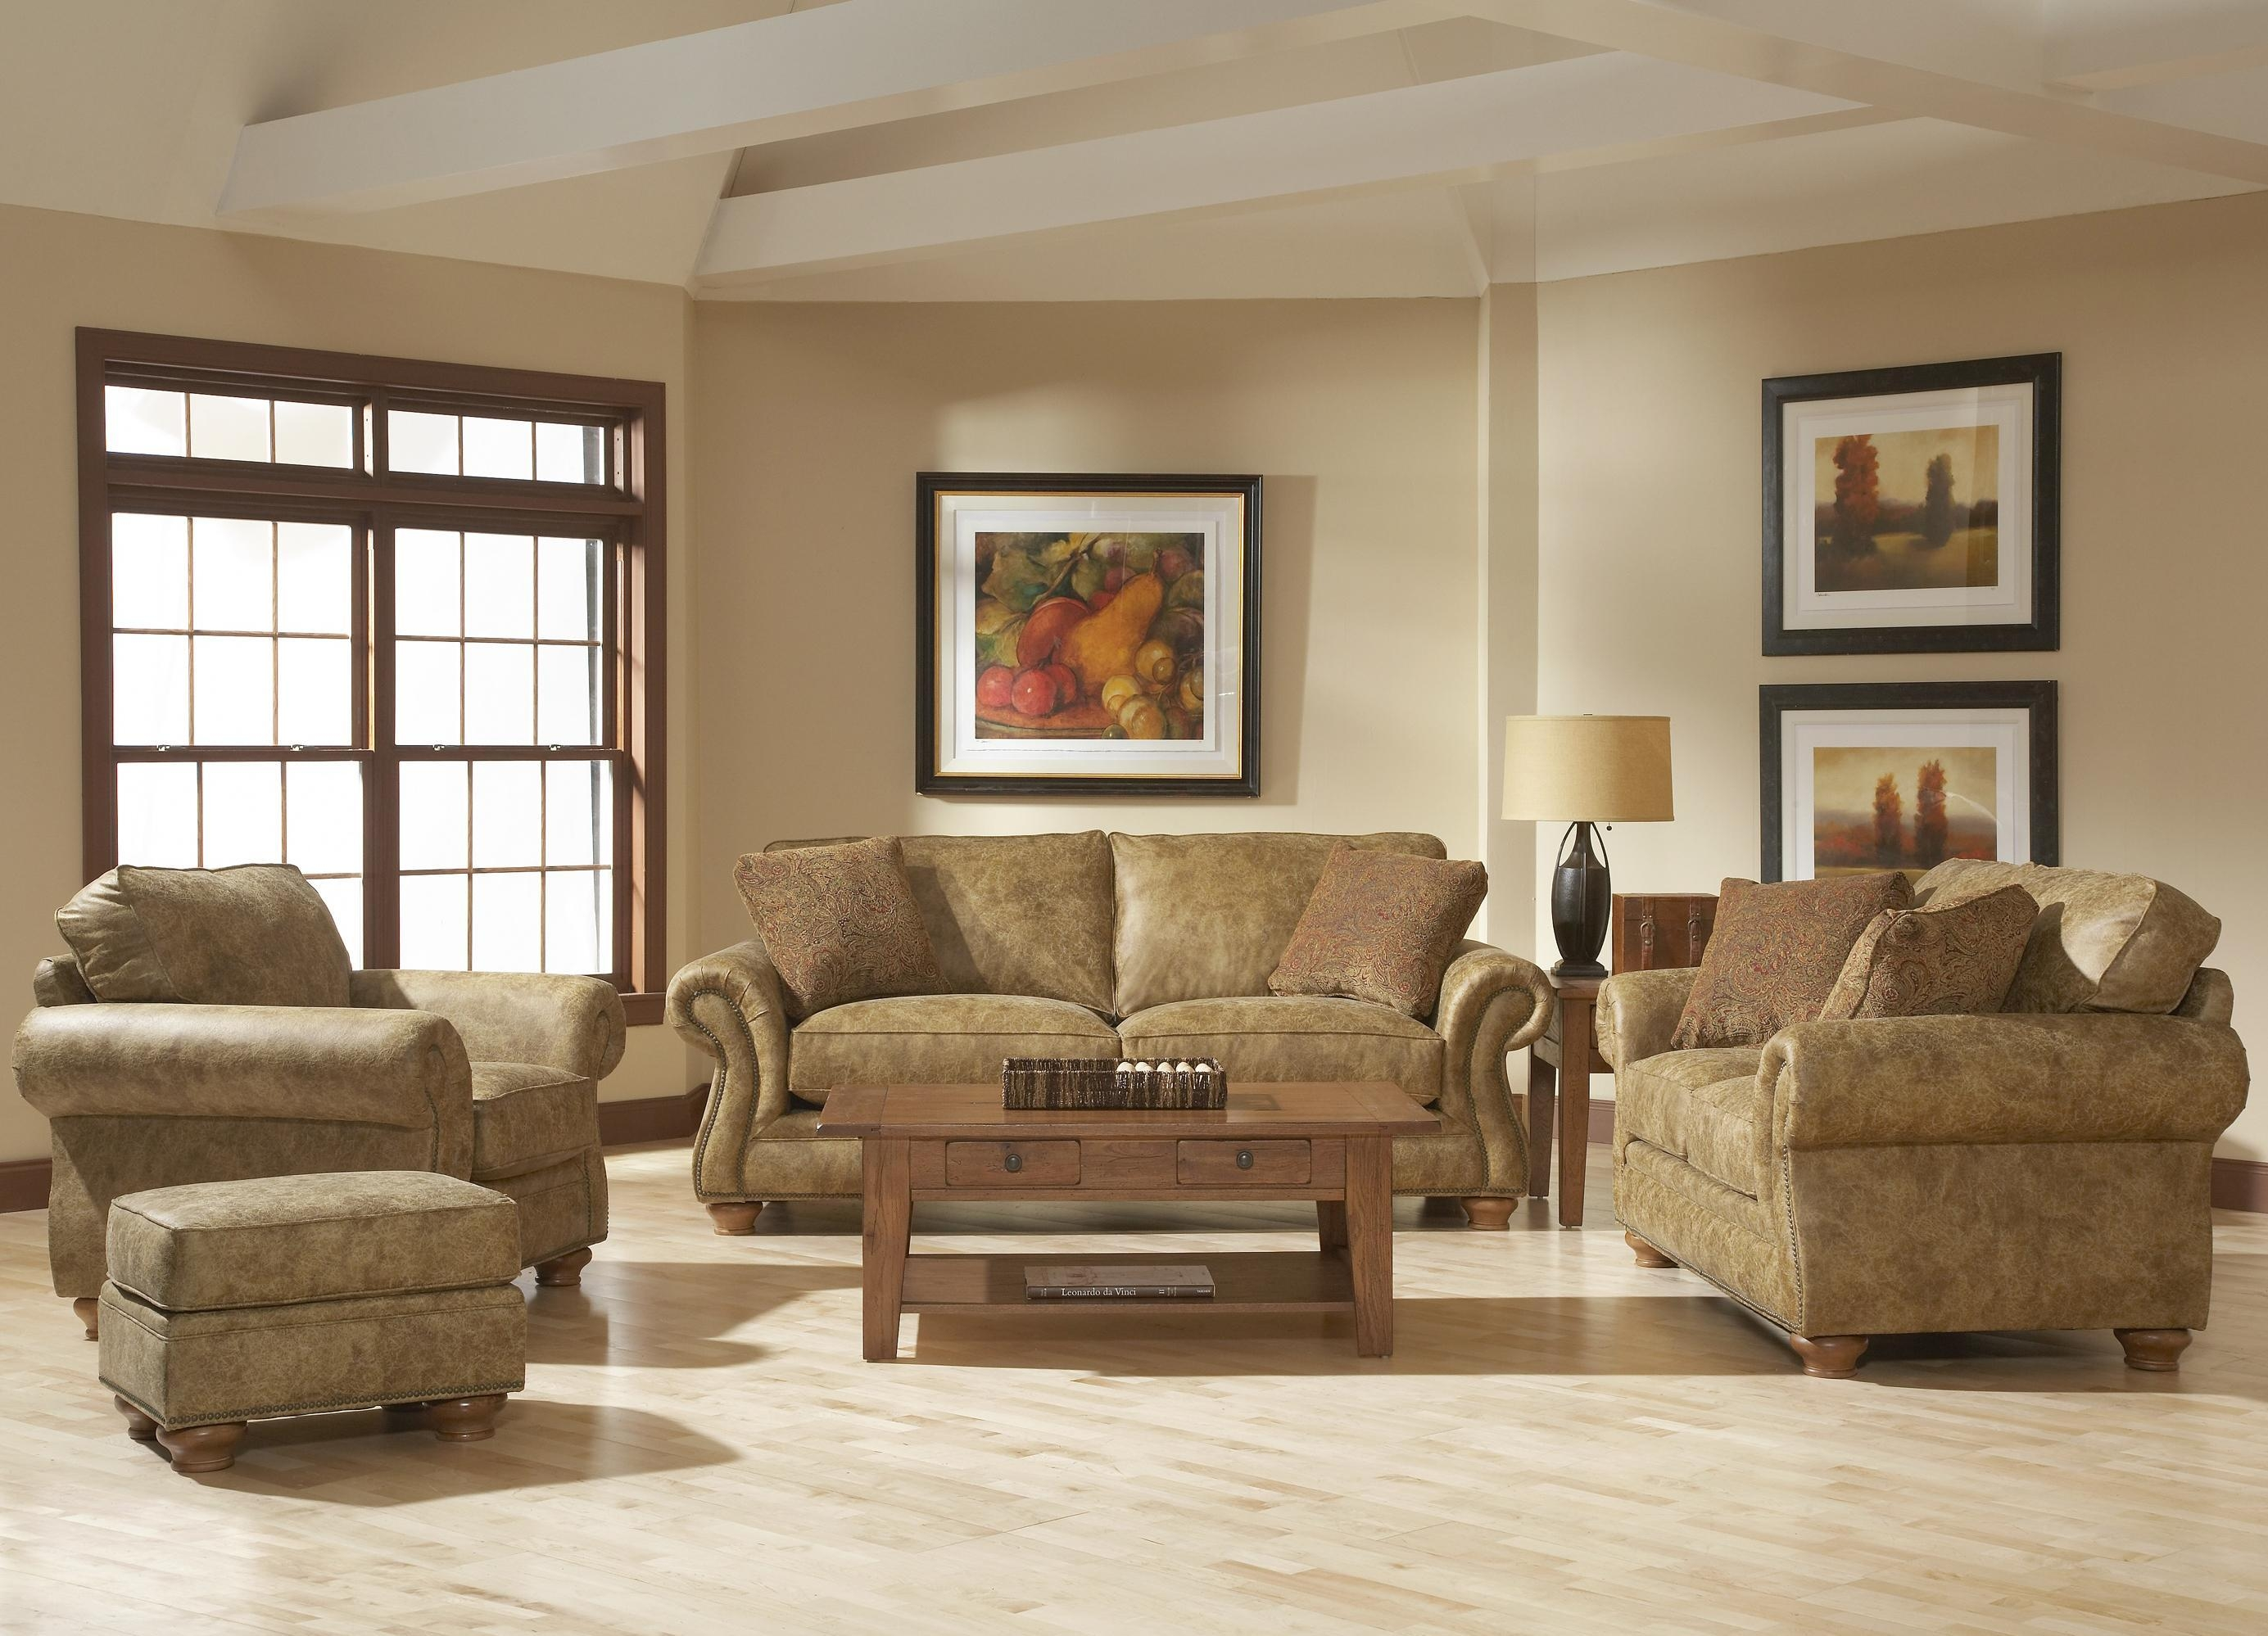 Furniture: Stunning Broyhill Sofas For Enchanting Living Room Pertaining To Broyhill Mckinney Sofas (Image 16 of 20)